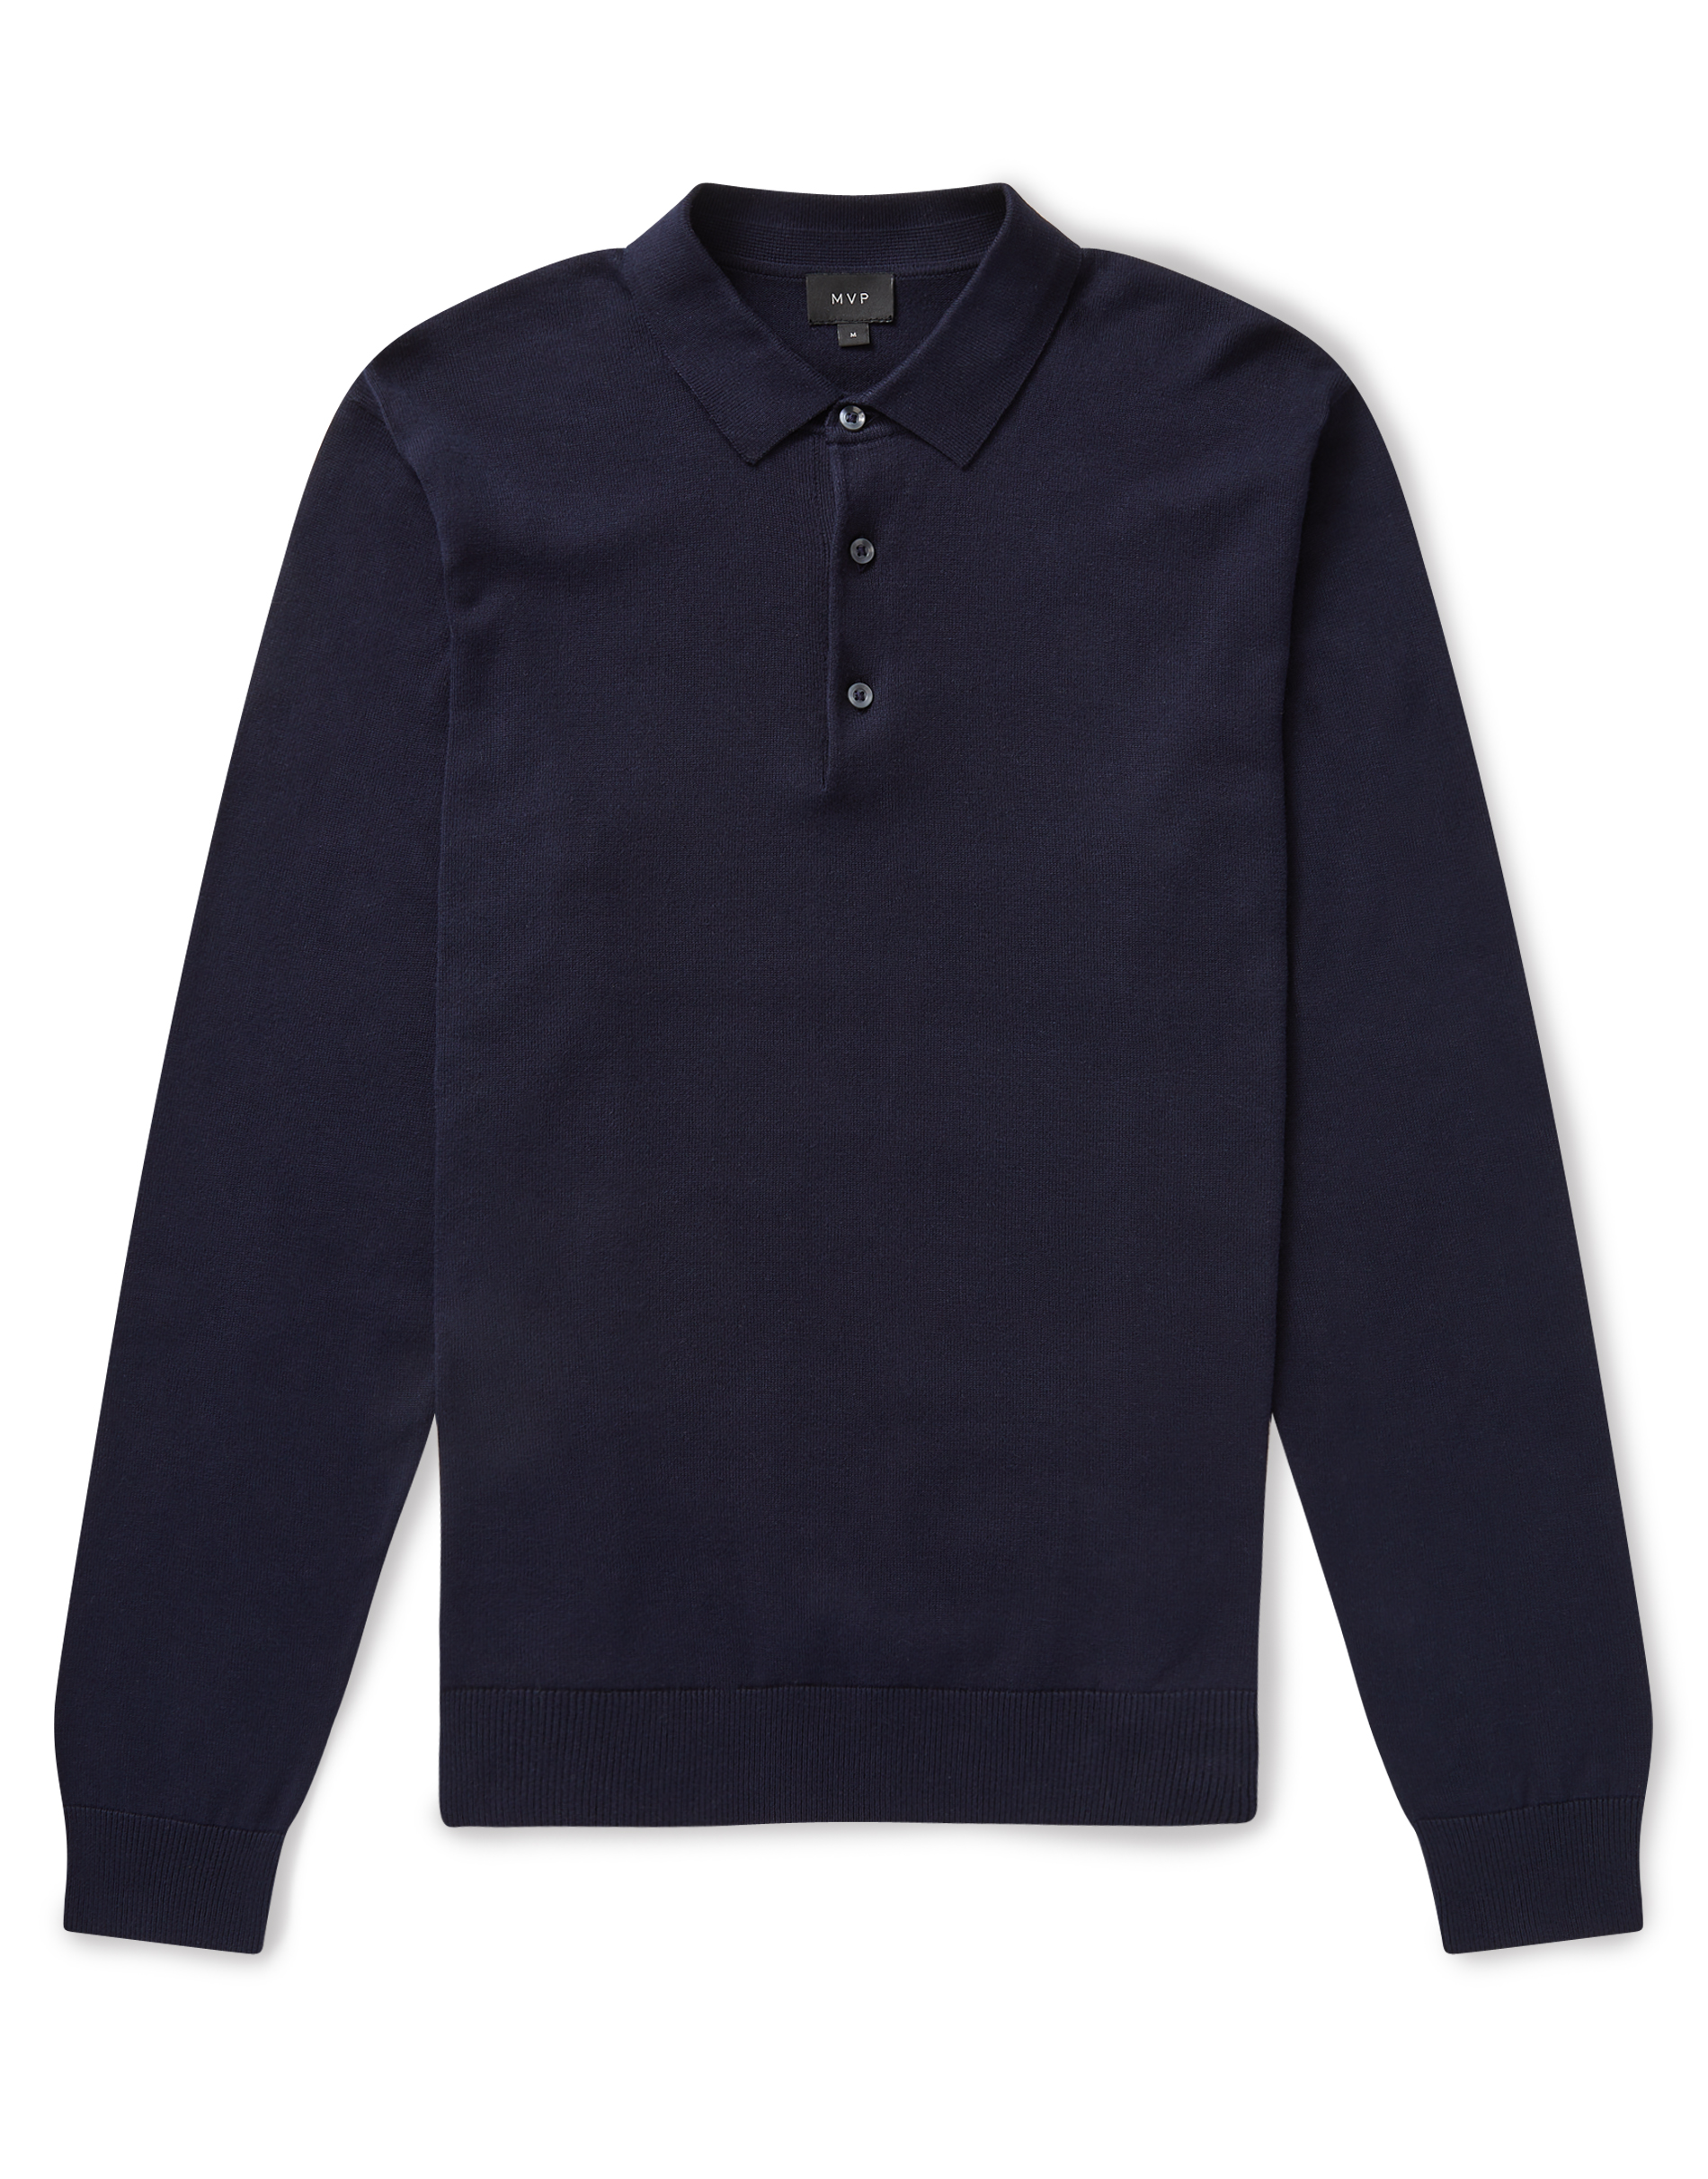 MVP Navy Palmers Long Sleeve Knitted Polo Shirt